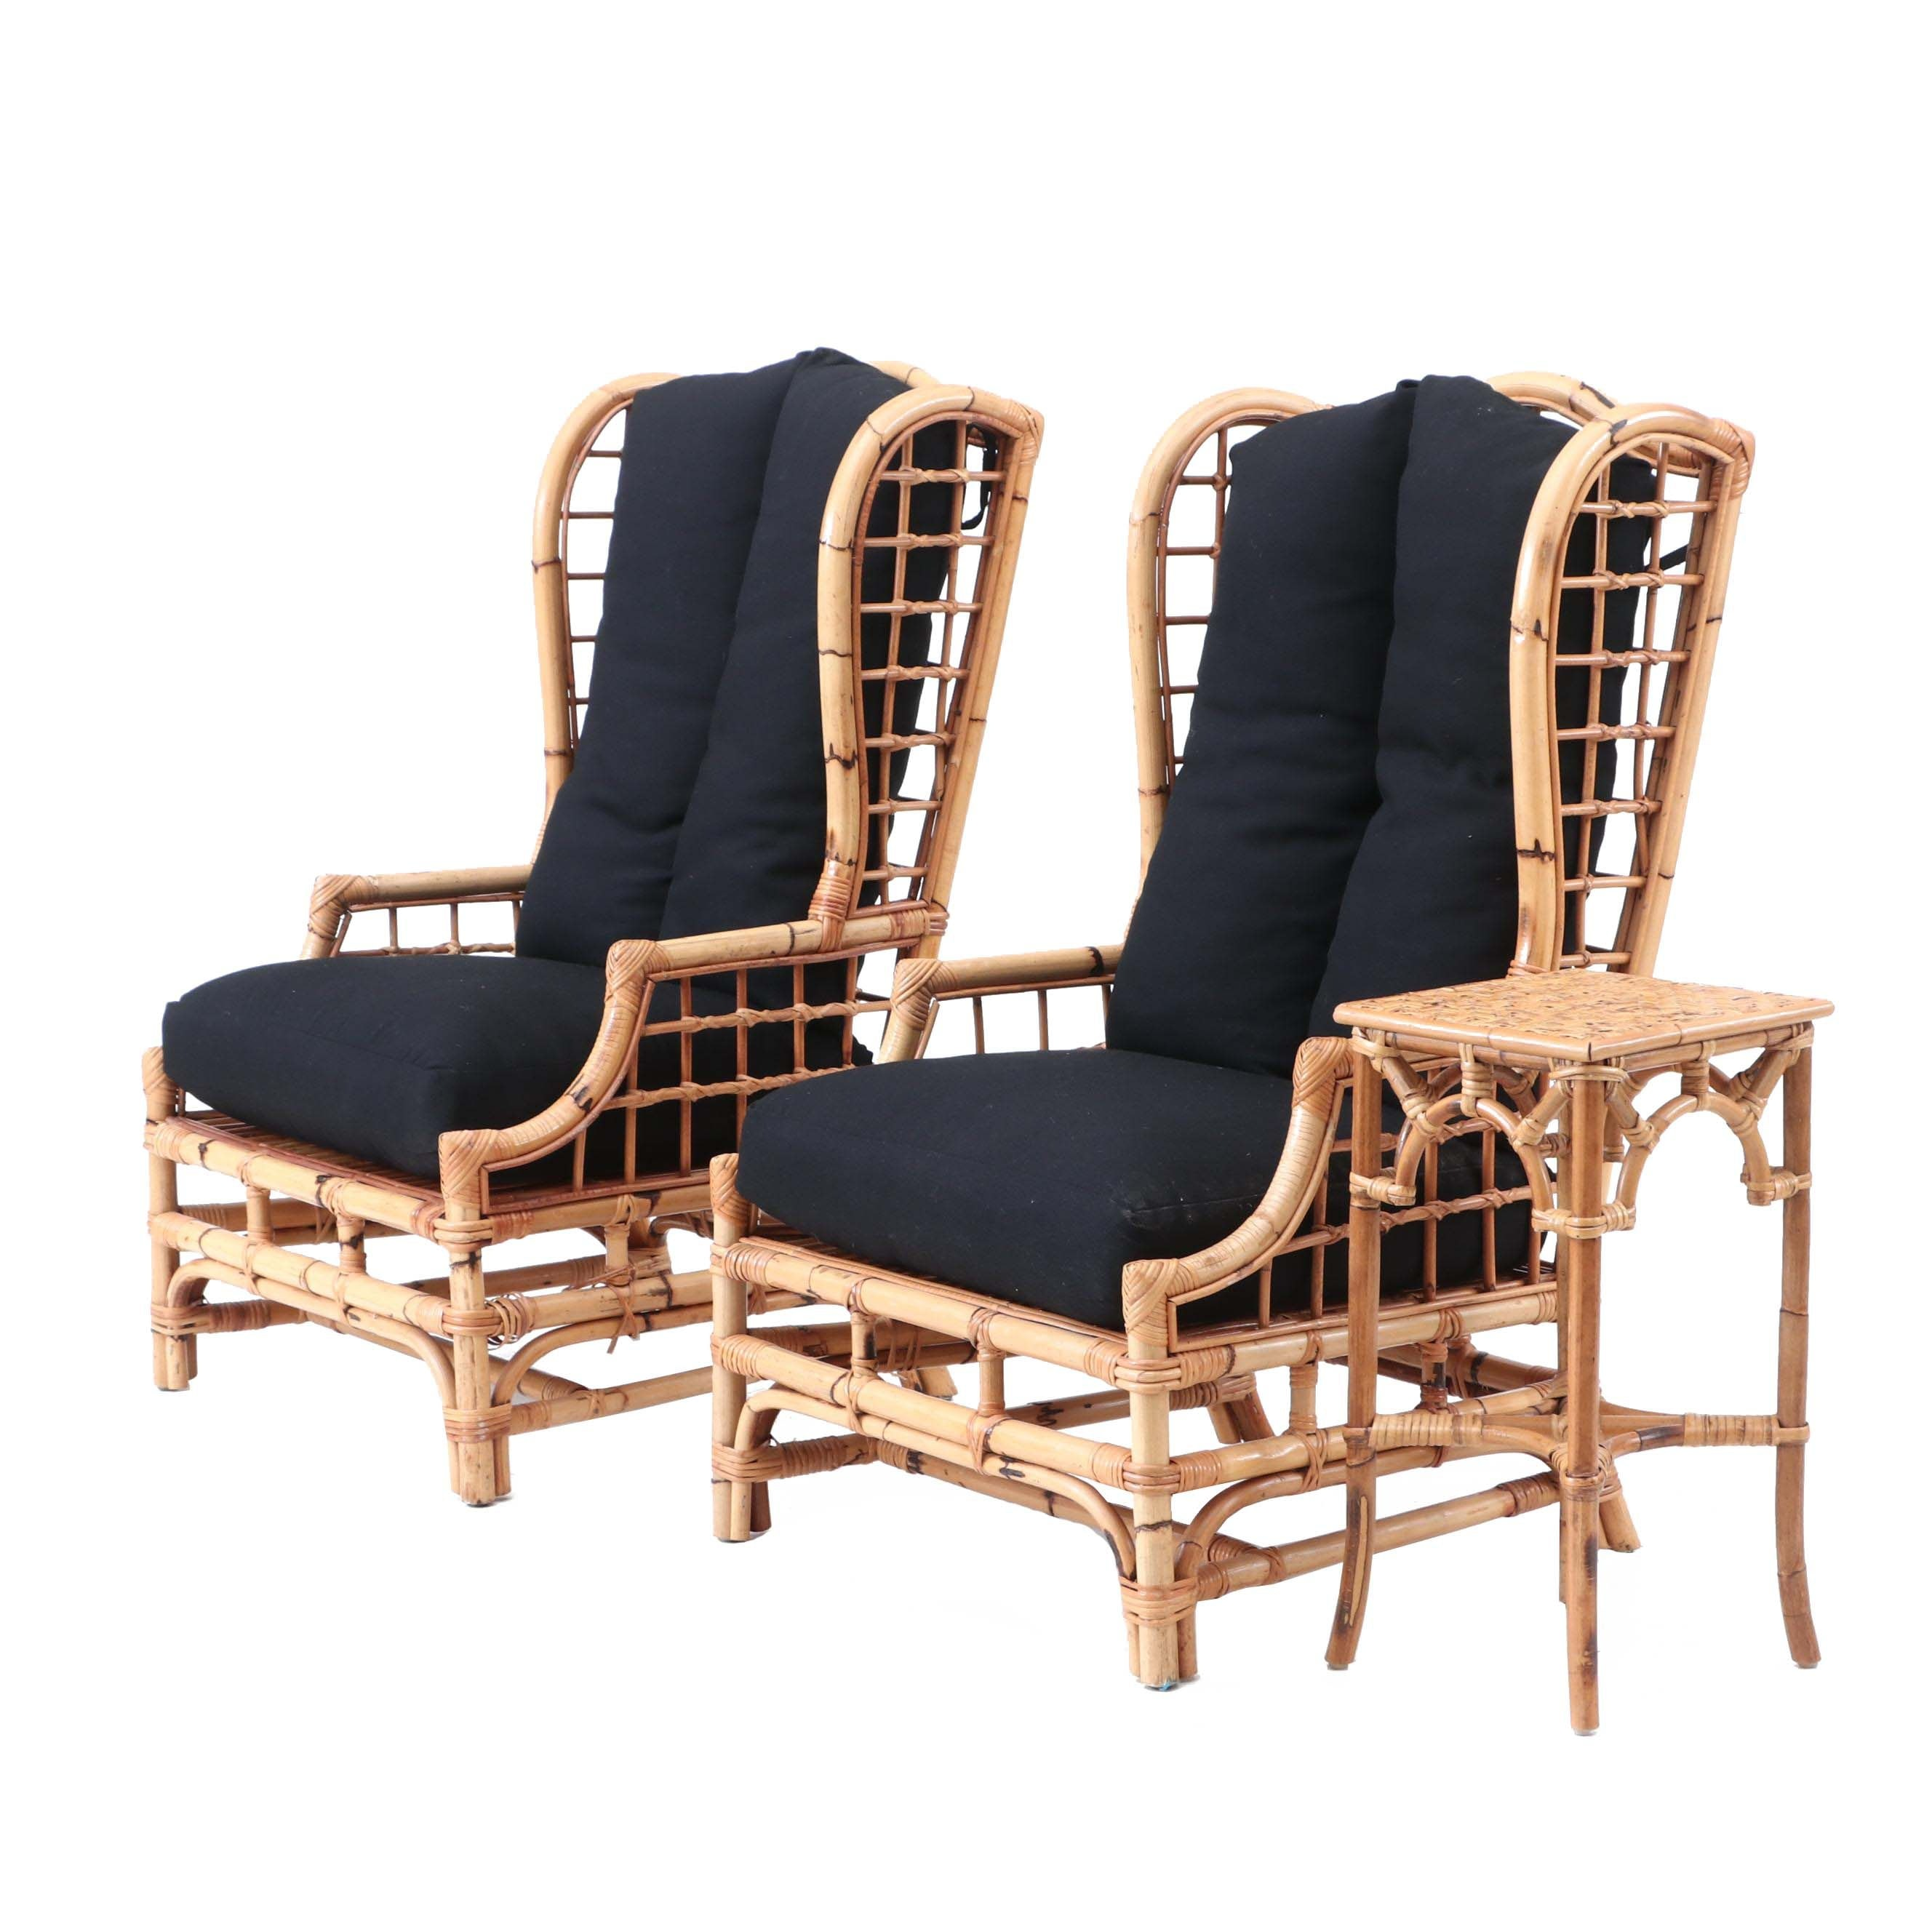 Two Wingback Rattan Chairs by McGuire